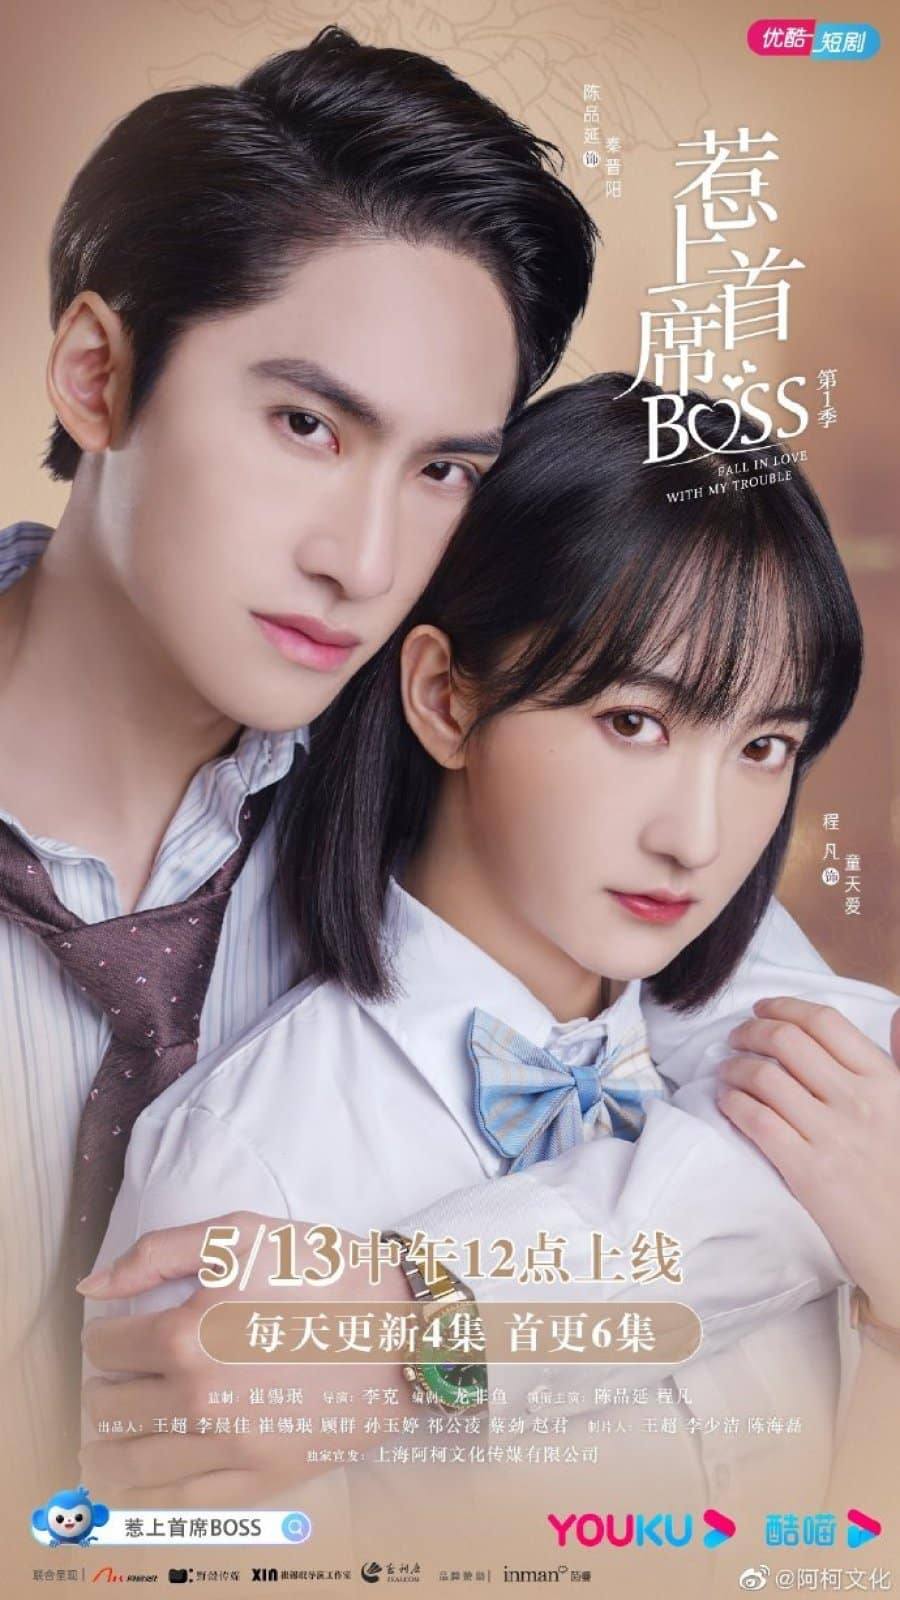 Fall In Love With My Trouble Season 1 ซับไทย EP1-EP30